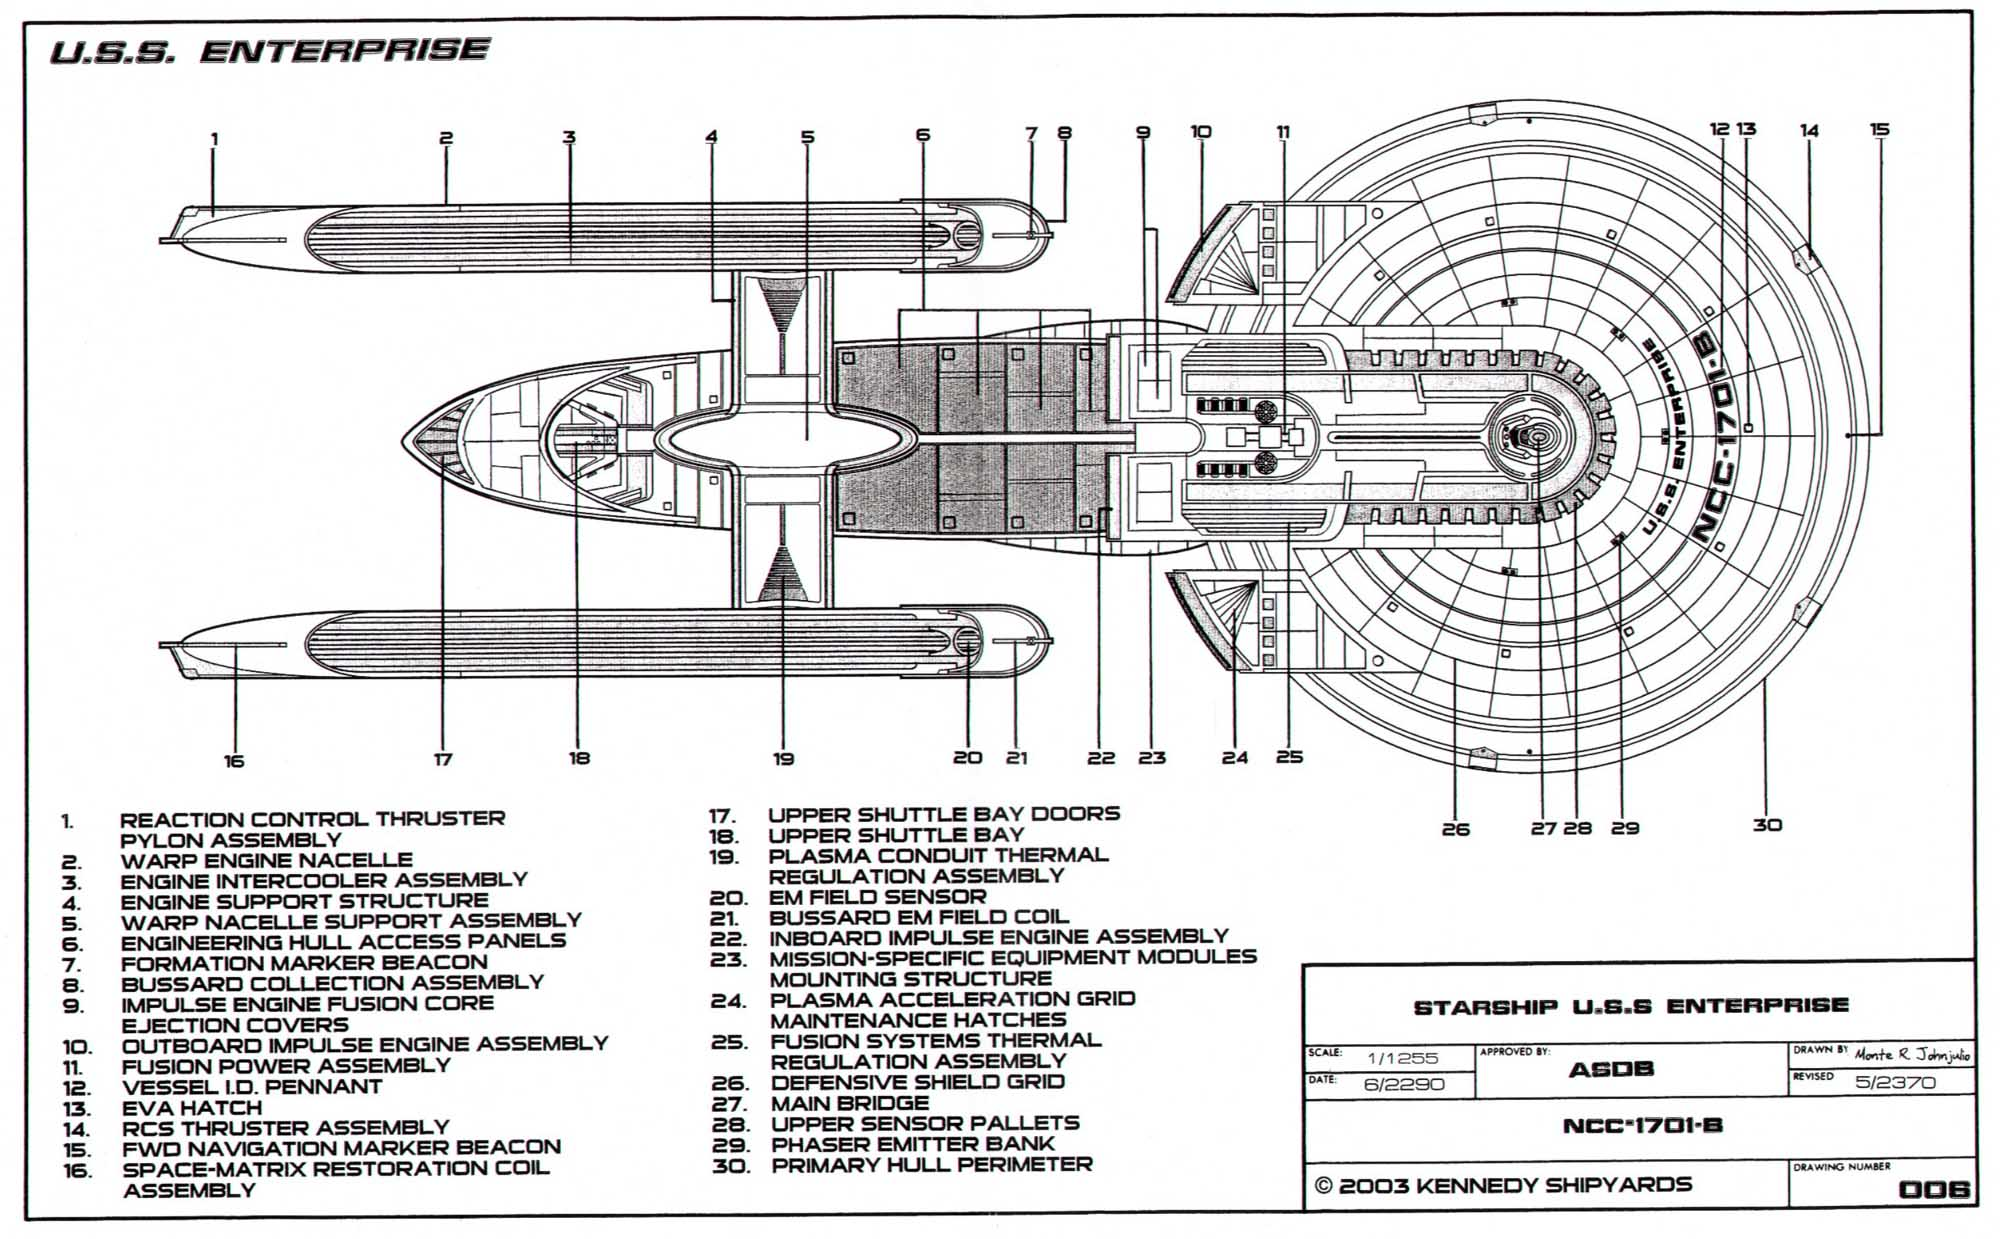 Schematic Uss Enterprise – The Wiring Diagram